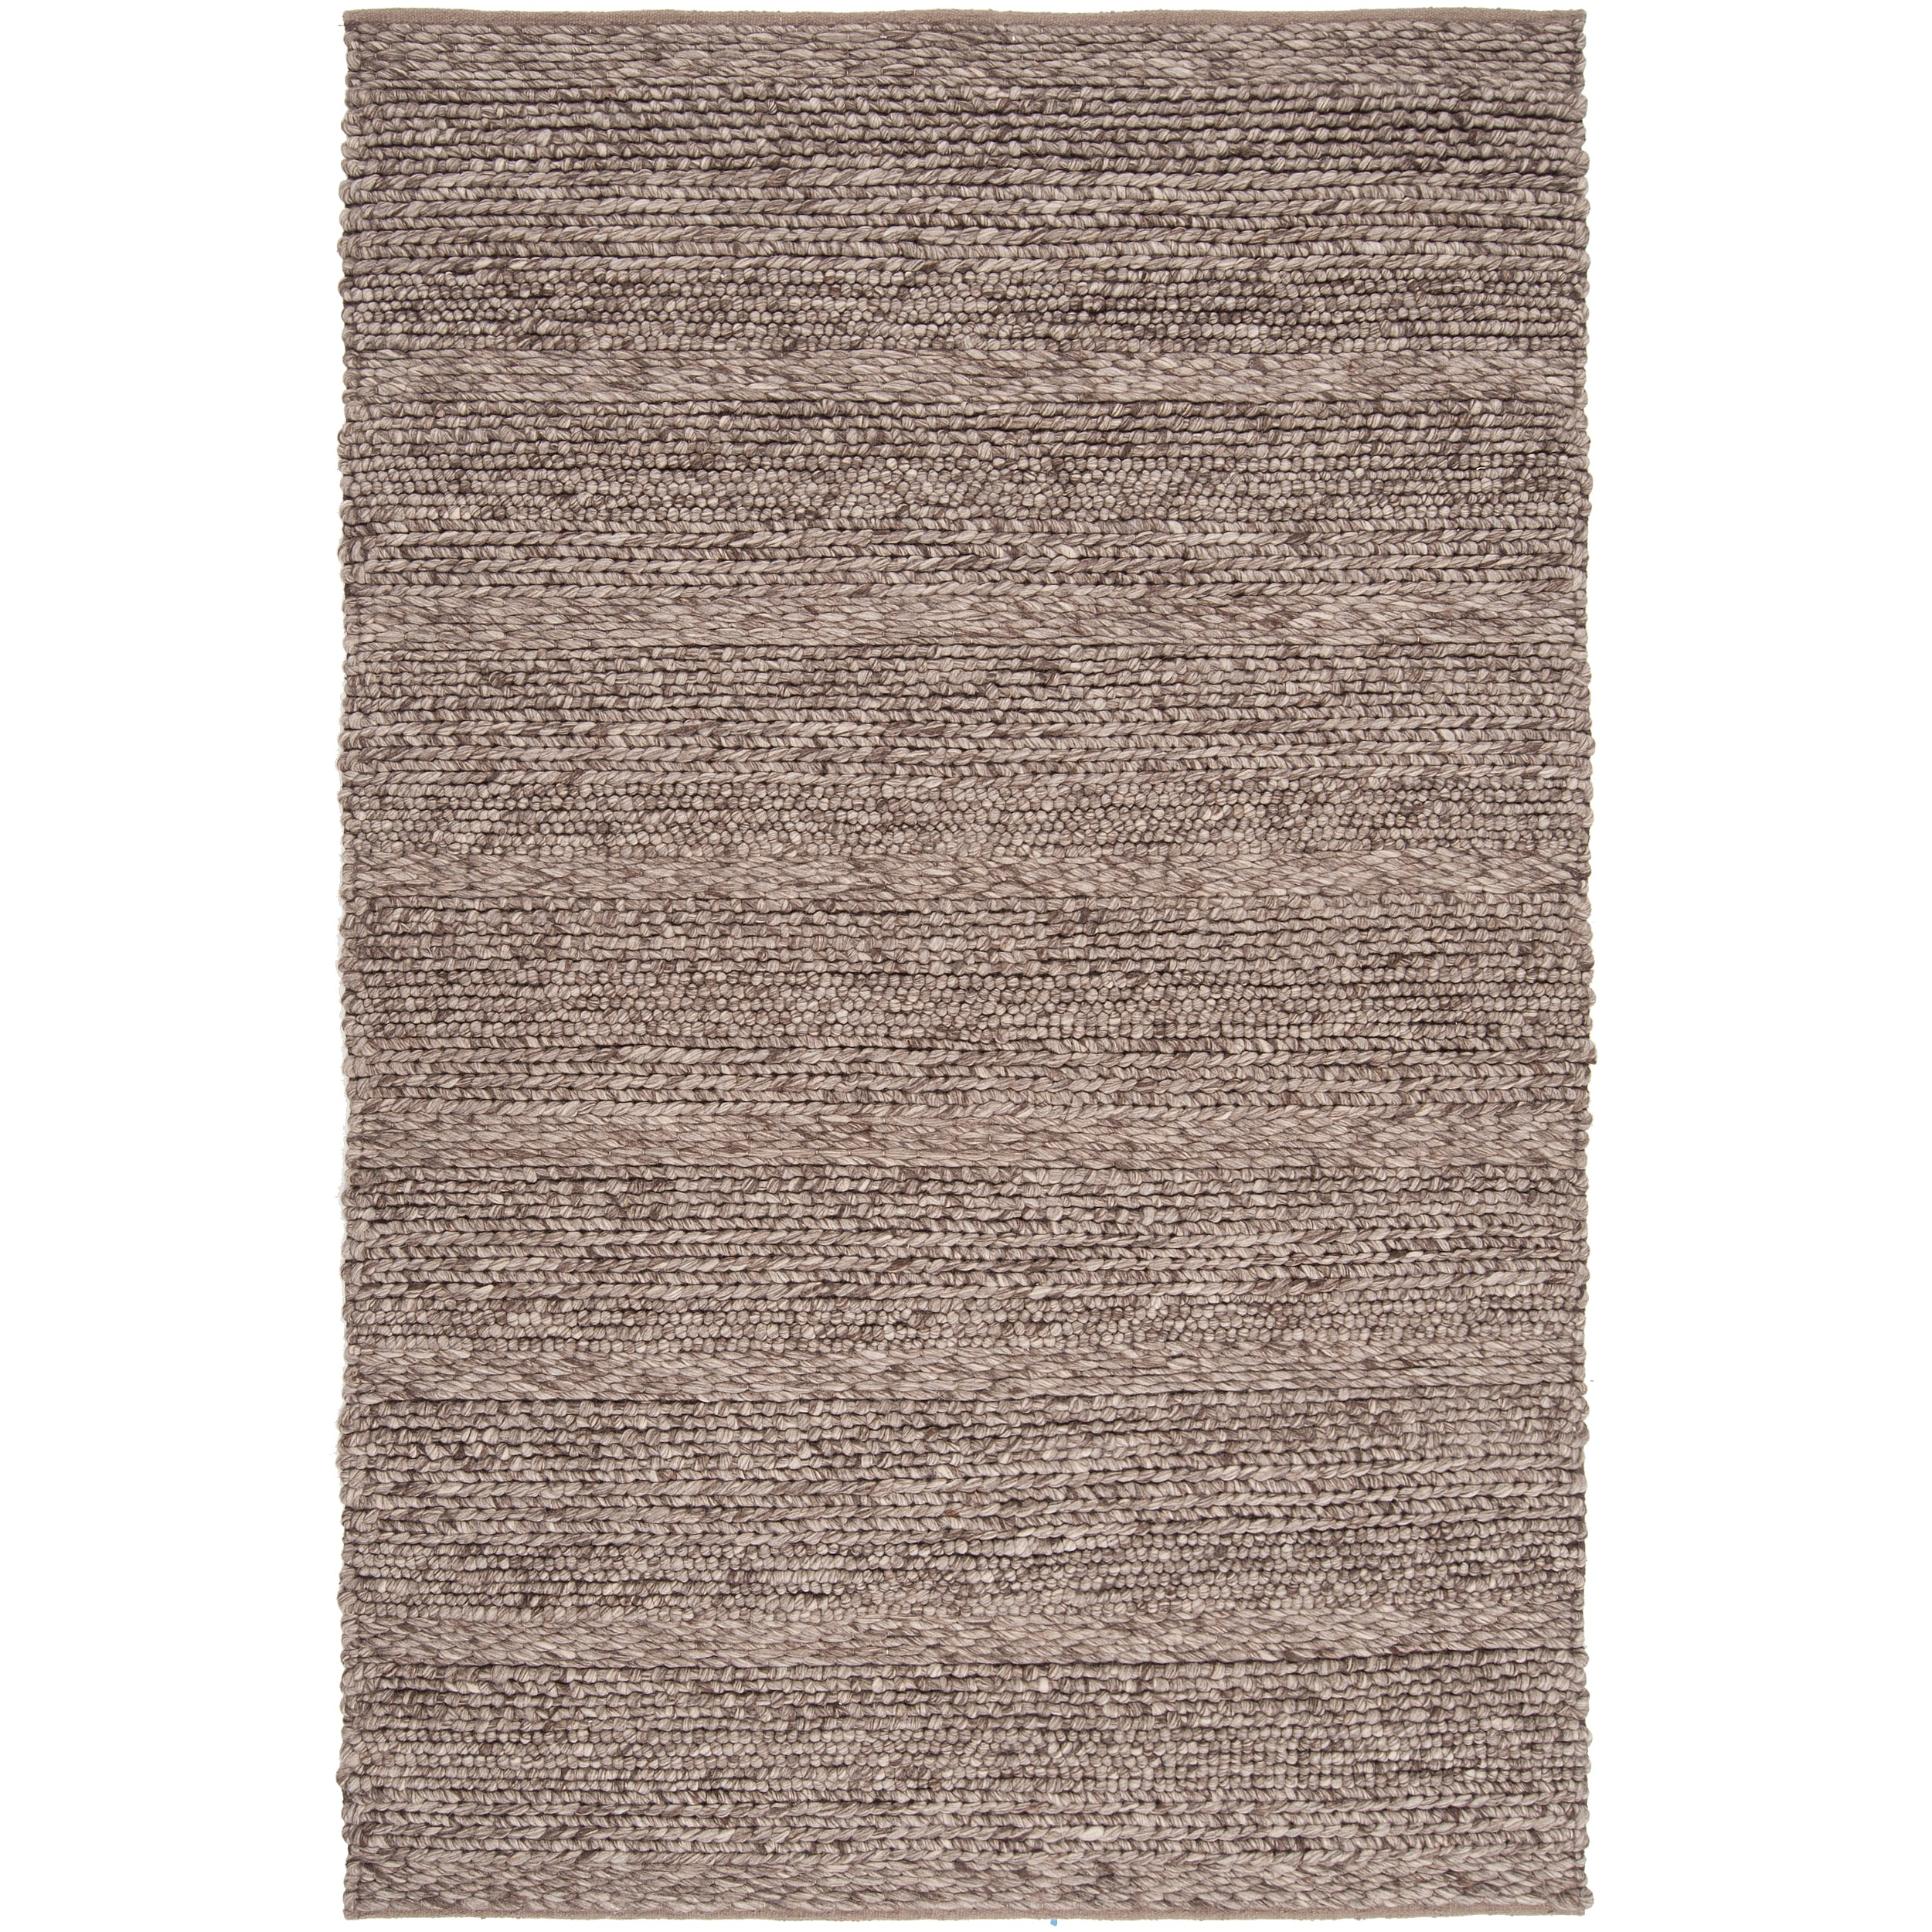 The Gray Barn Magda Hand-woven Casual Solid Brown Wool Area Rug - 8' x 10'